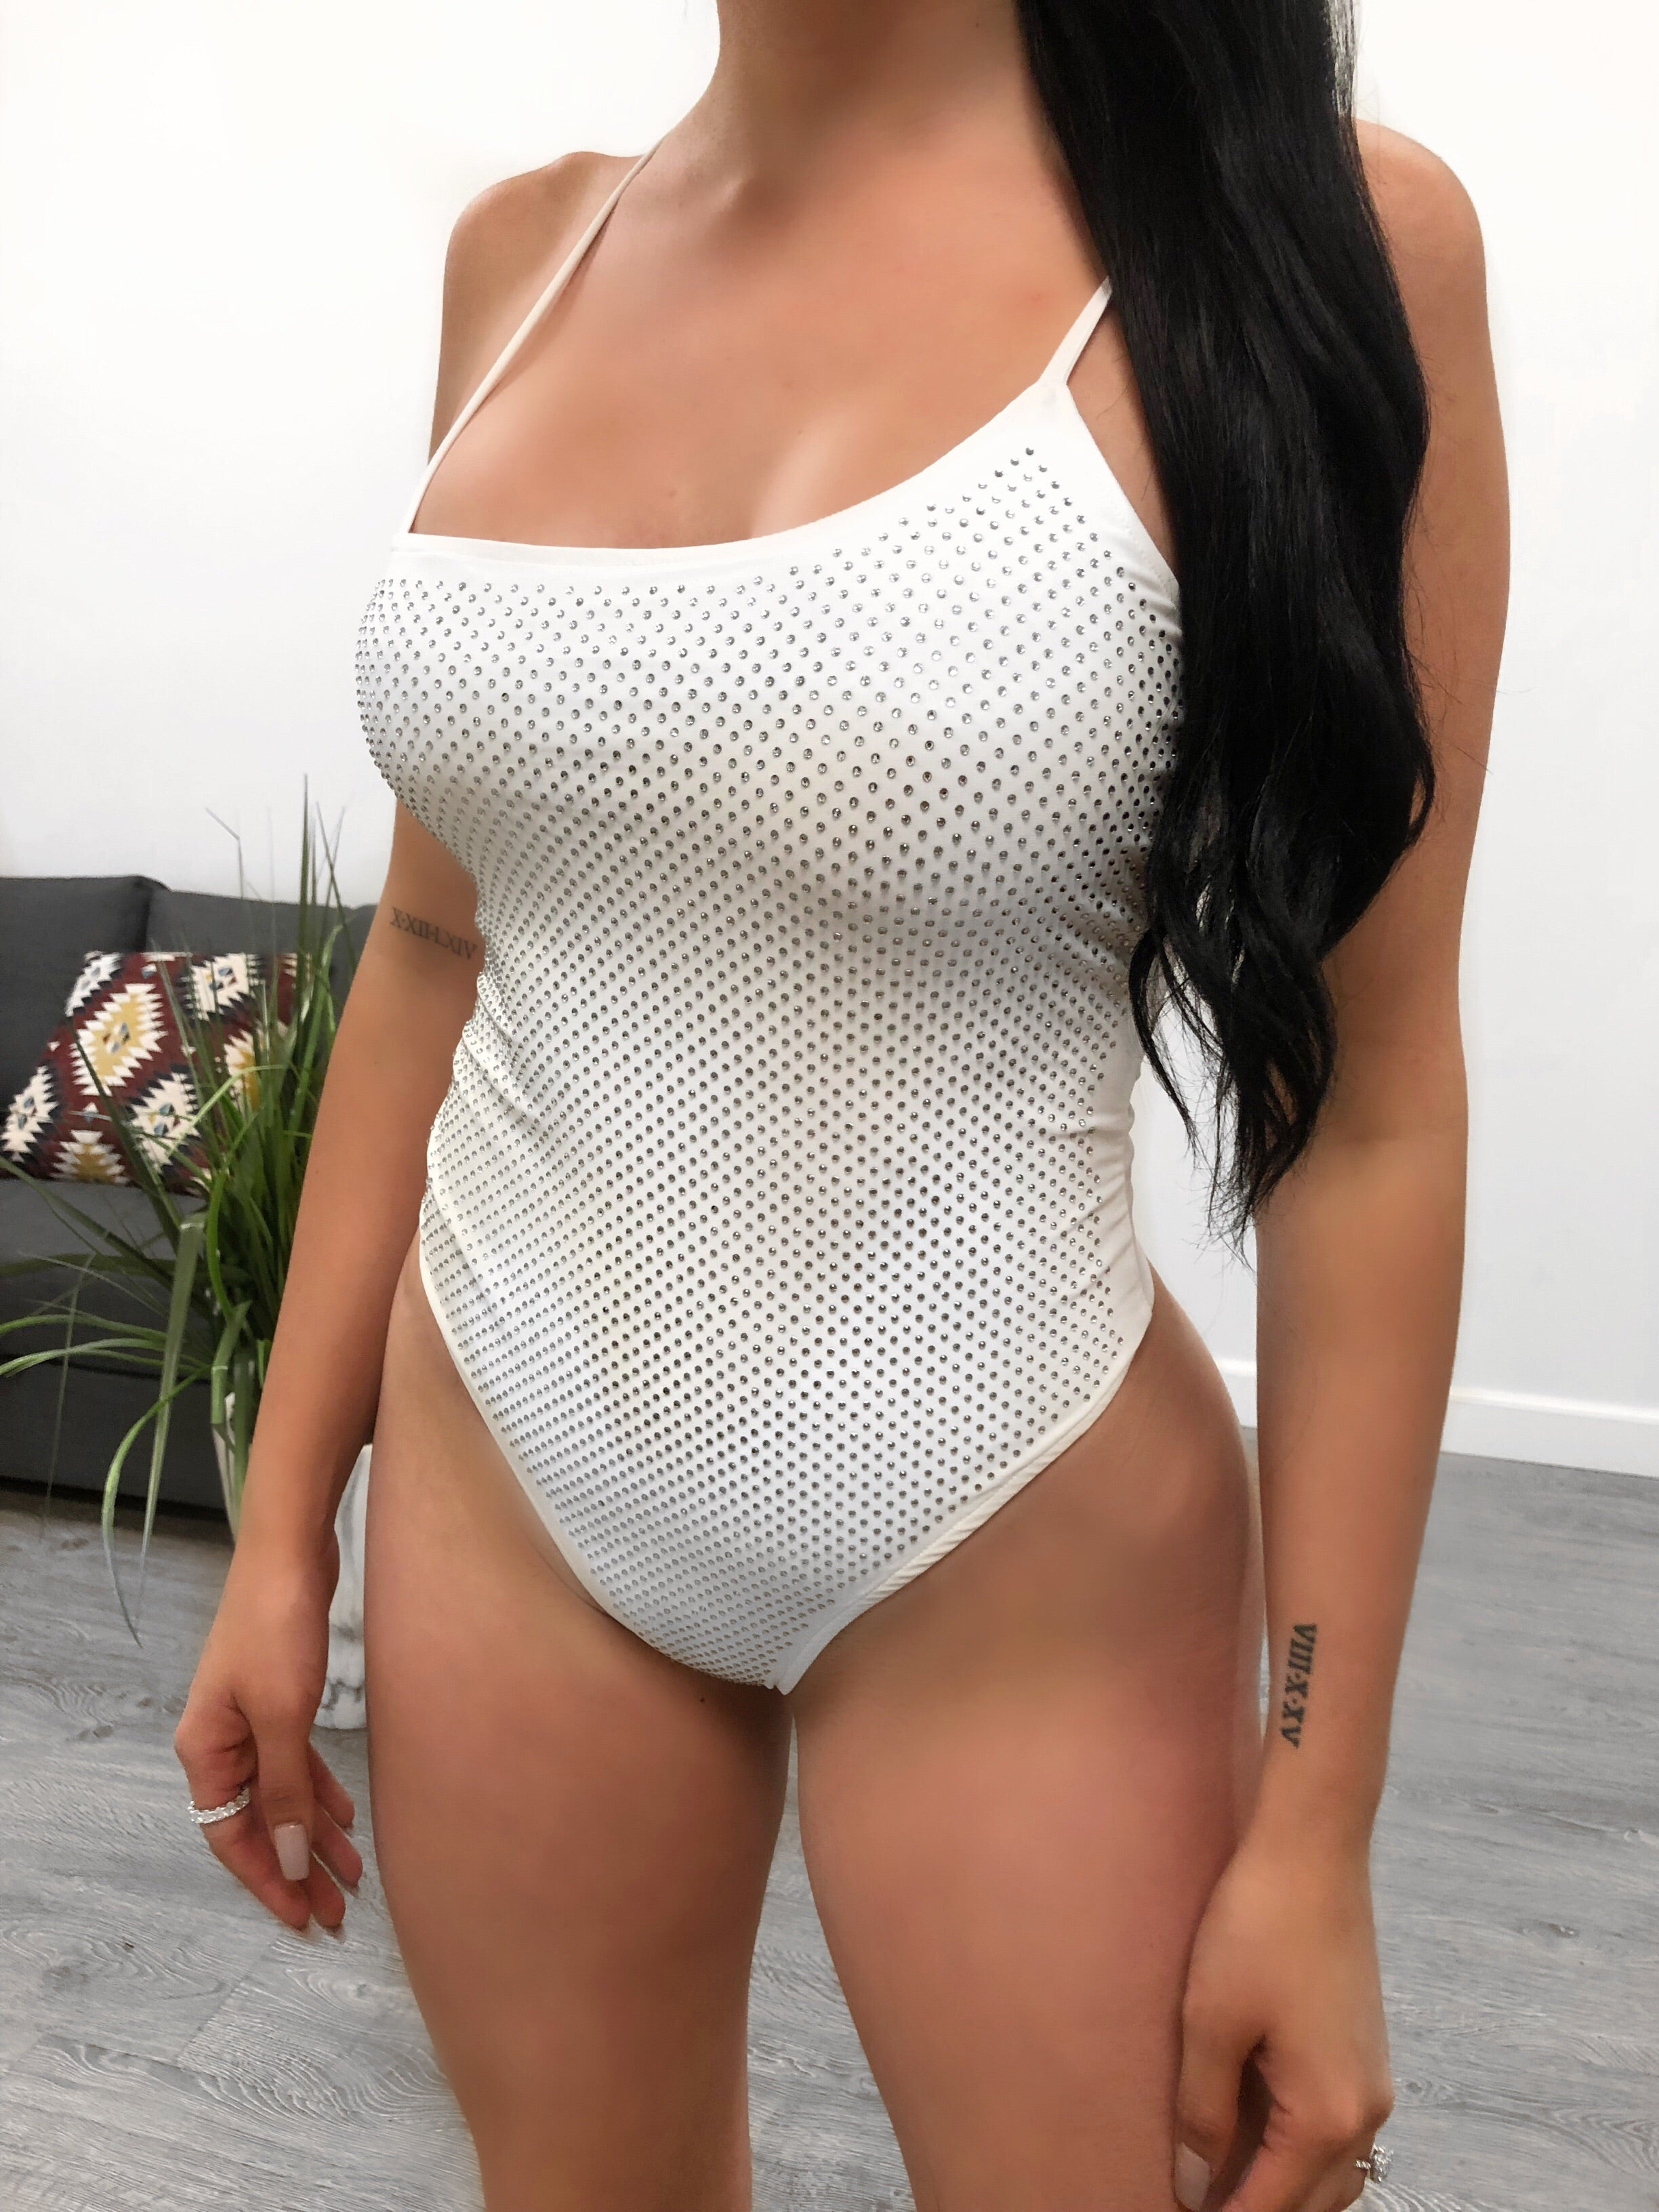 white spaghetti strap one piece bathing suit with low u shape that shows mid cleavage. bathing suit front is cover is circle shape diamond studs mid back is visible. very cheeky bottom